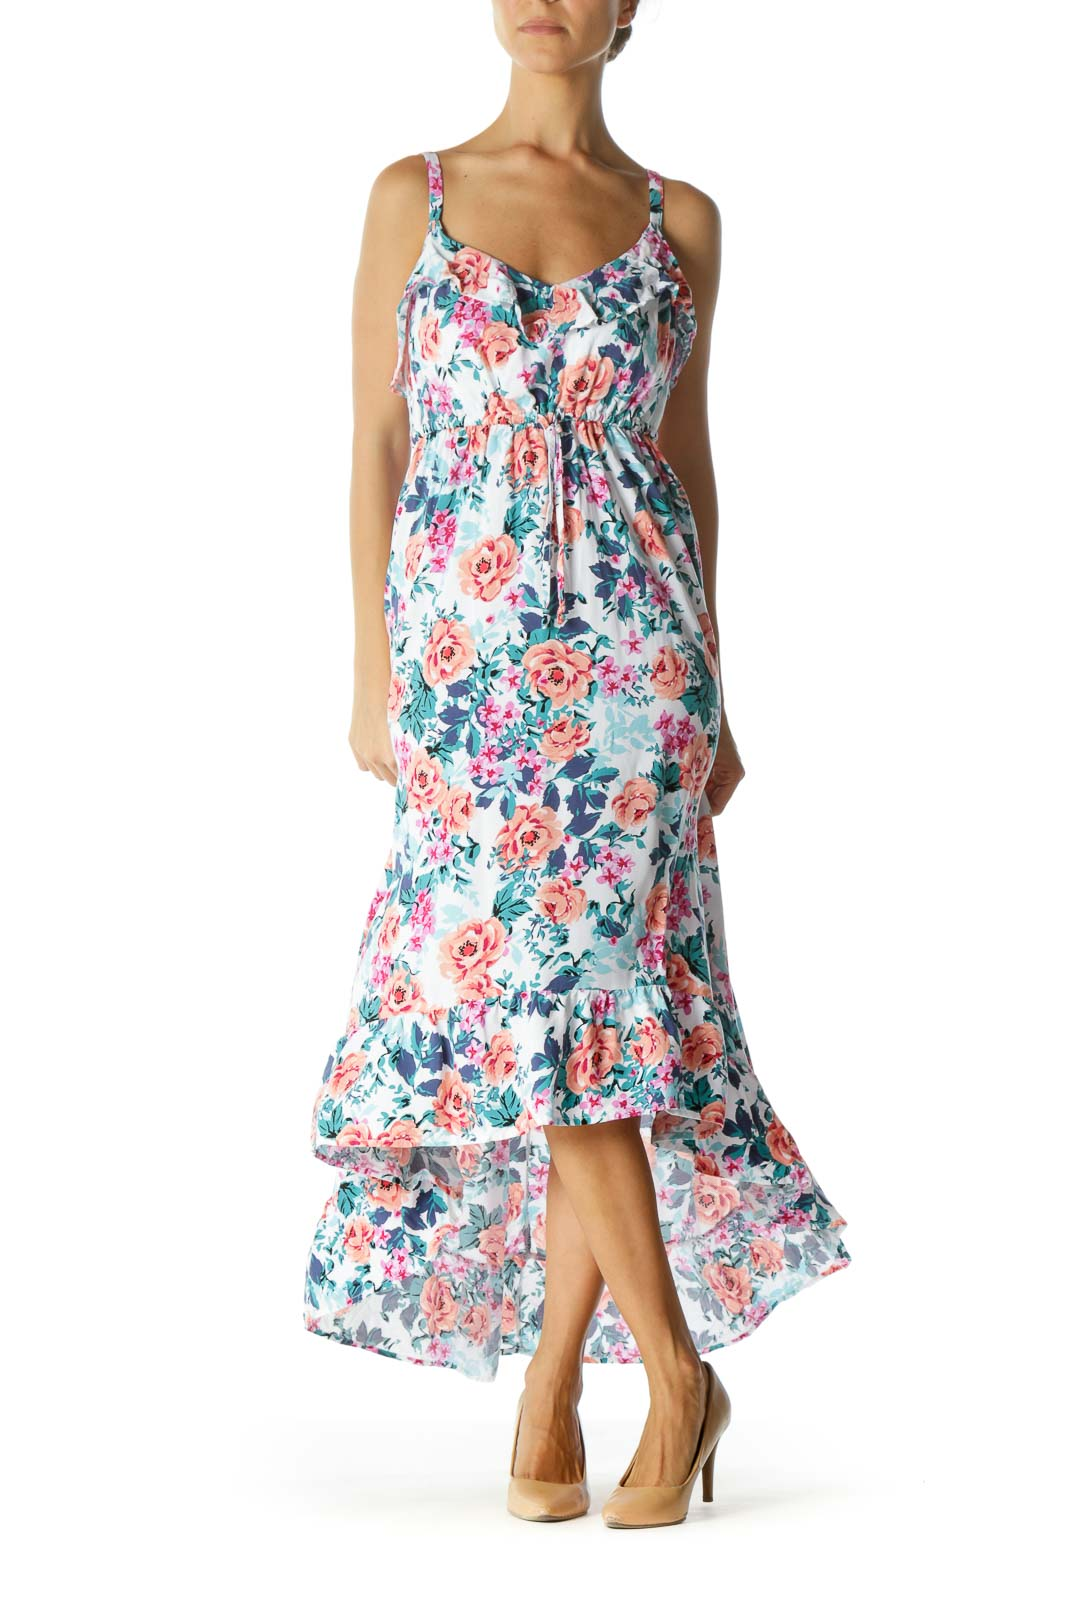 White Orange Blue Pink Floral-Print Ruffled Stretch High-Low Plus Size Dress